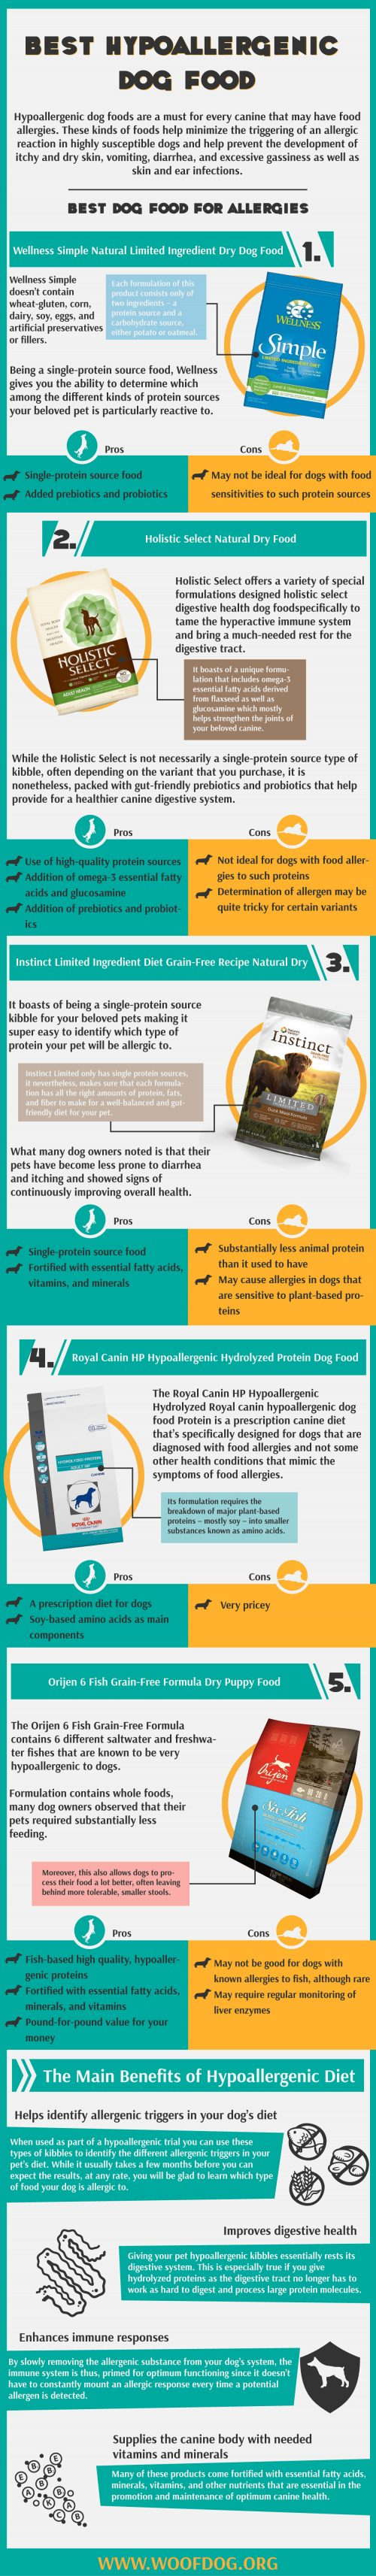 Visual Presentation of the highest rated hypoallergenic pet food